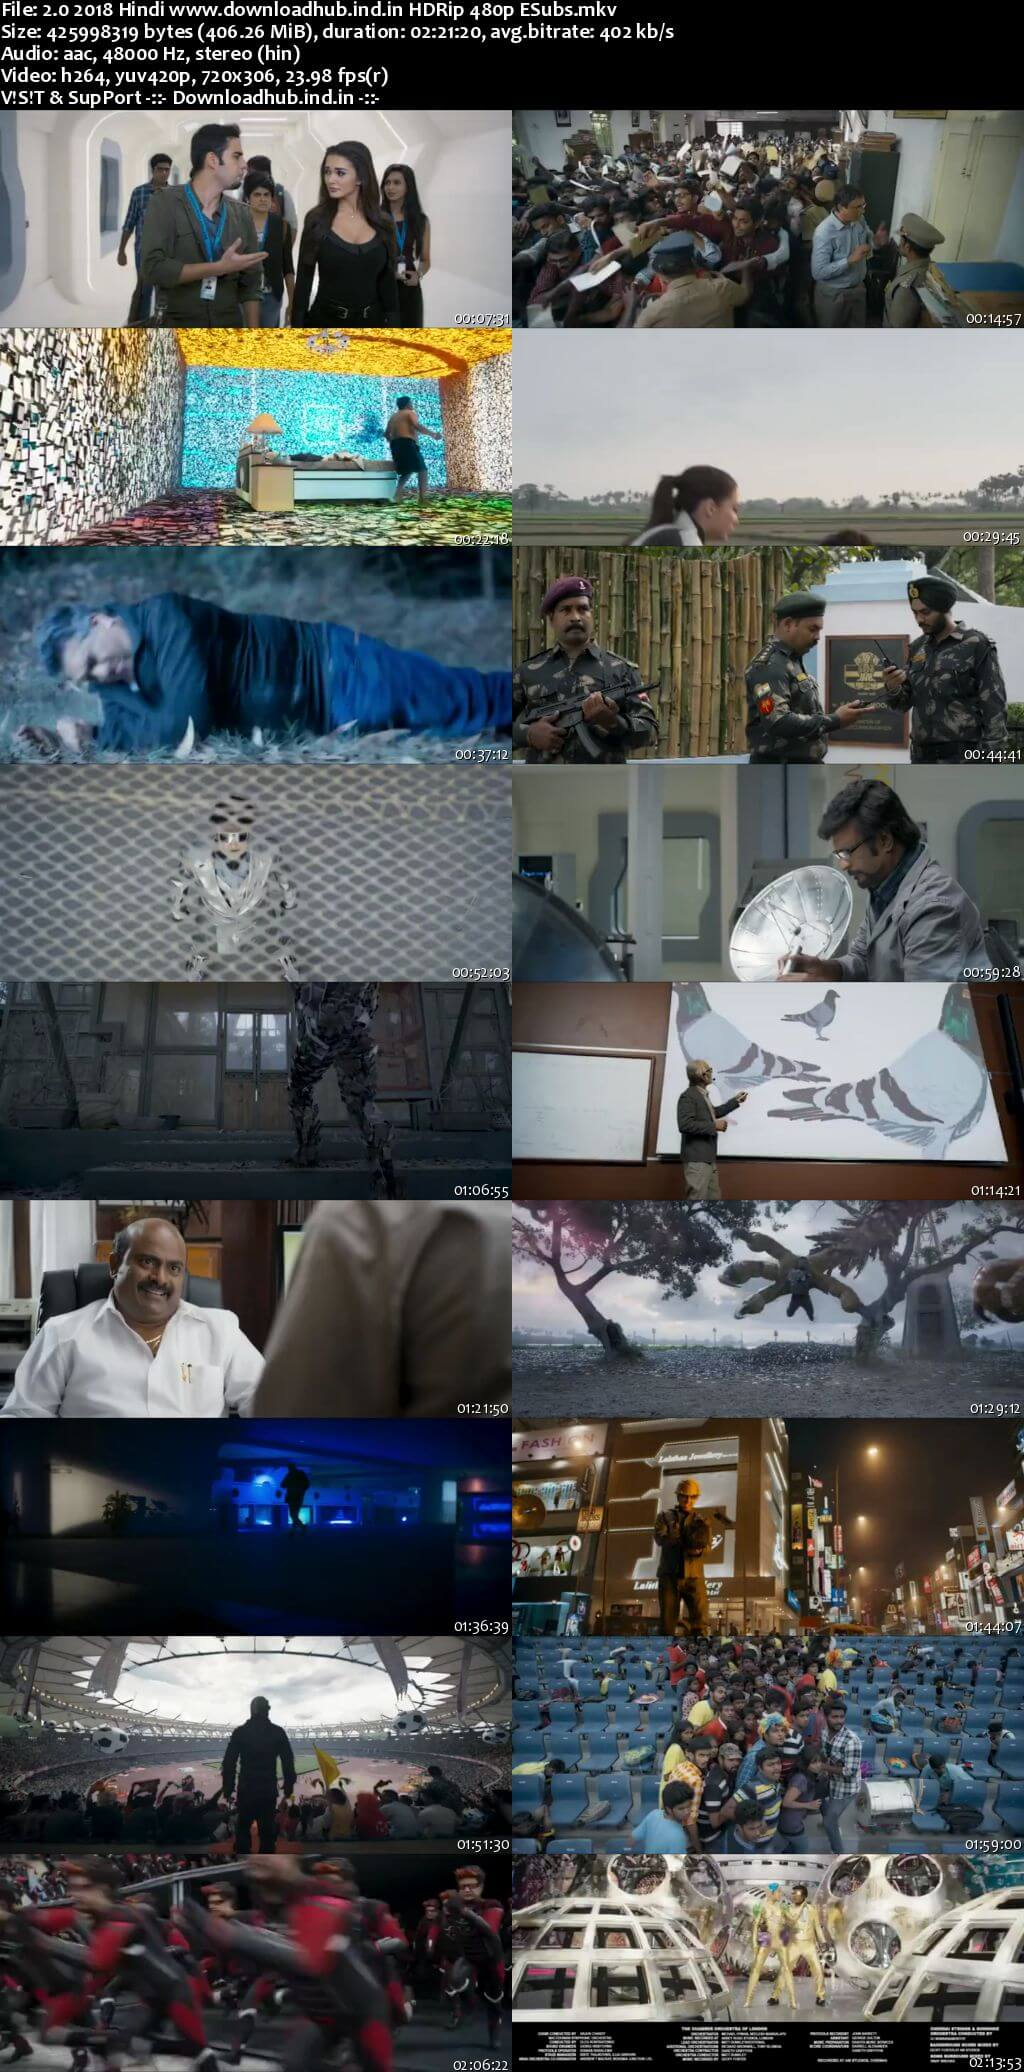 2.0 2018 Hindi 400MB HDRip 480p ESubs